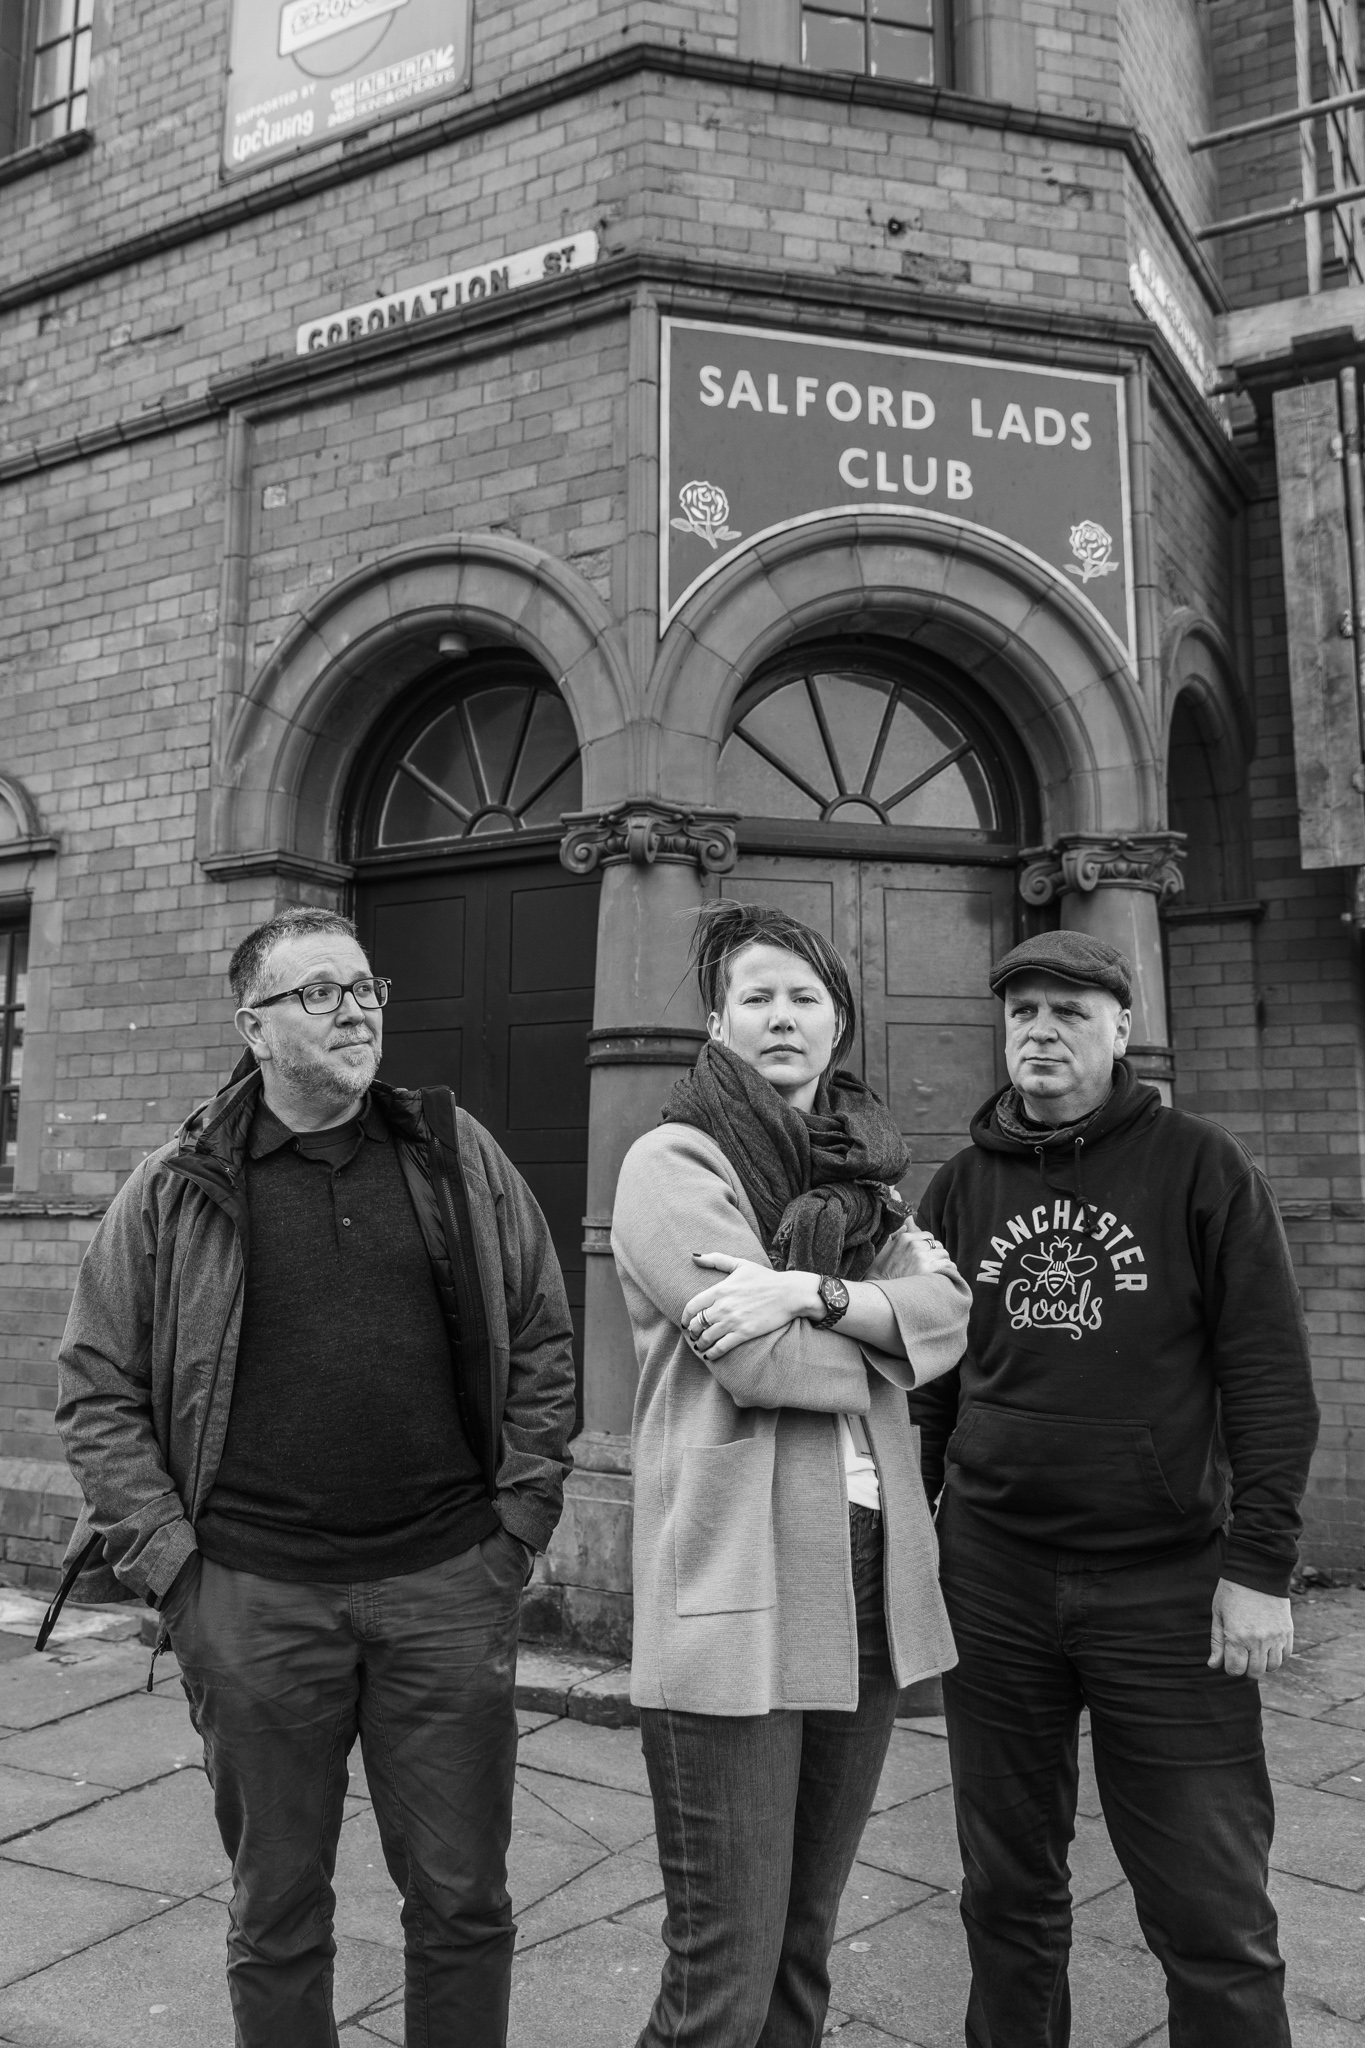 Salford Lads Club, as made famous by The Smiths // 11 INSTAGRAM-WORTHY PHOTO SPOTS IN MANCHESTER, ENGLAND // www.readysetjetset.net #readysetjetset #manchester #england #uk #unitedkingdom #cityguide #travel